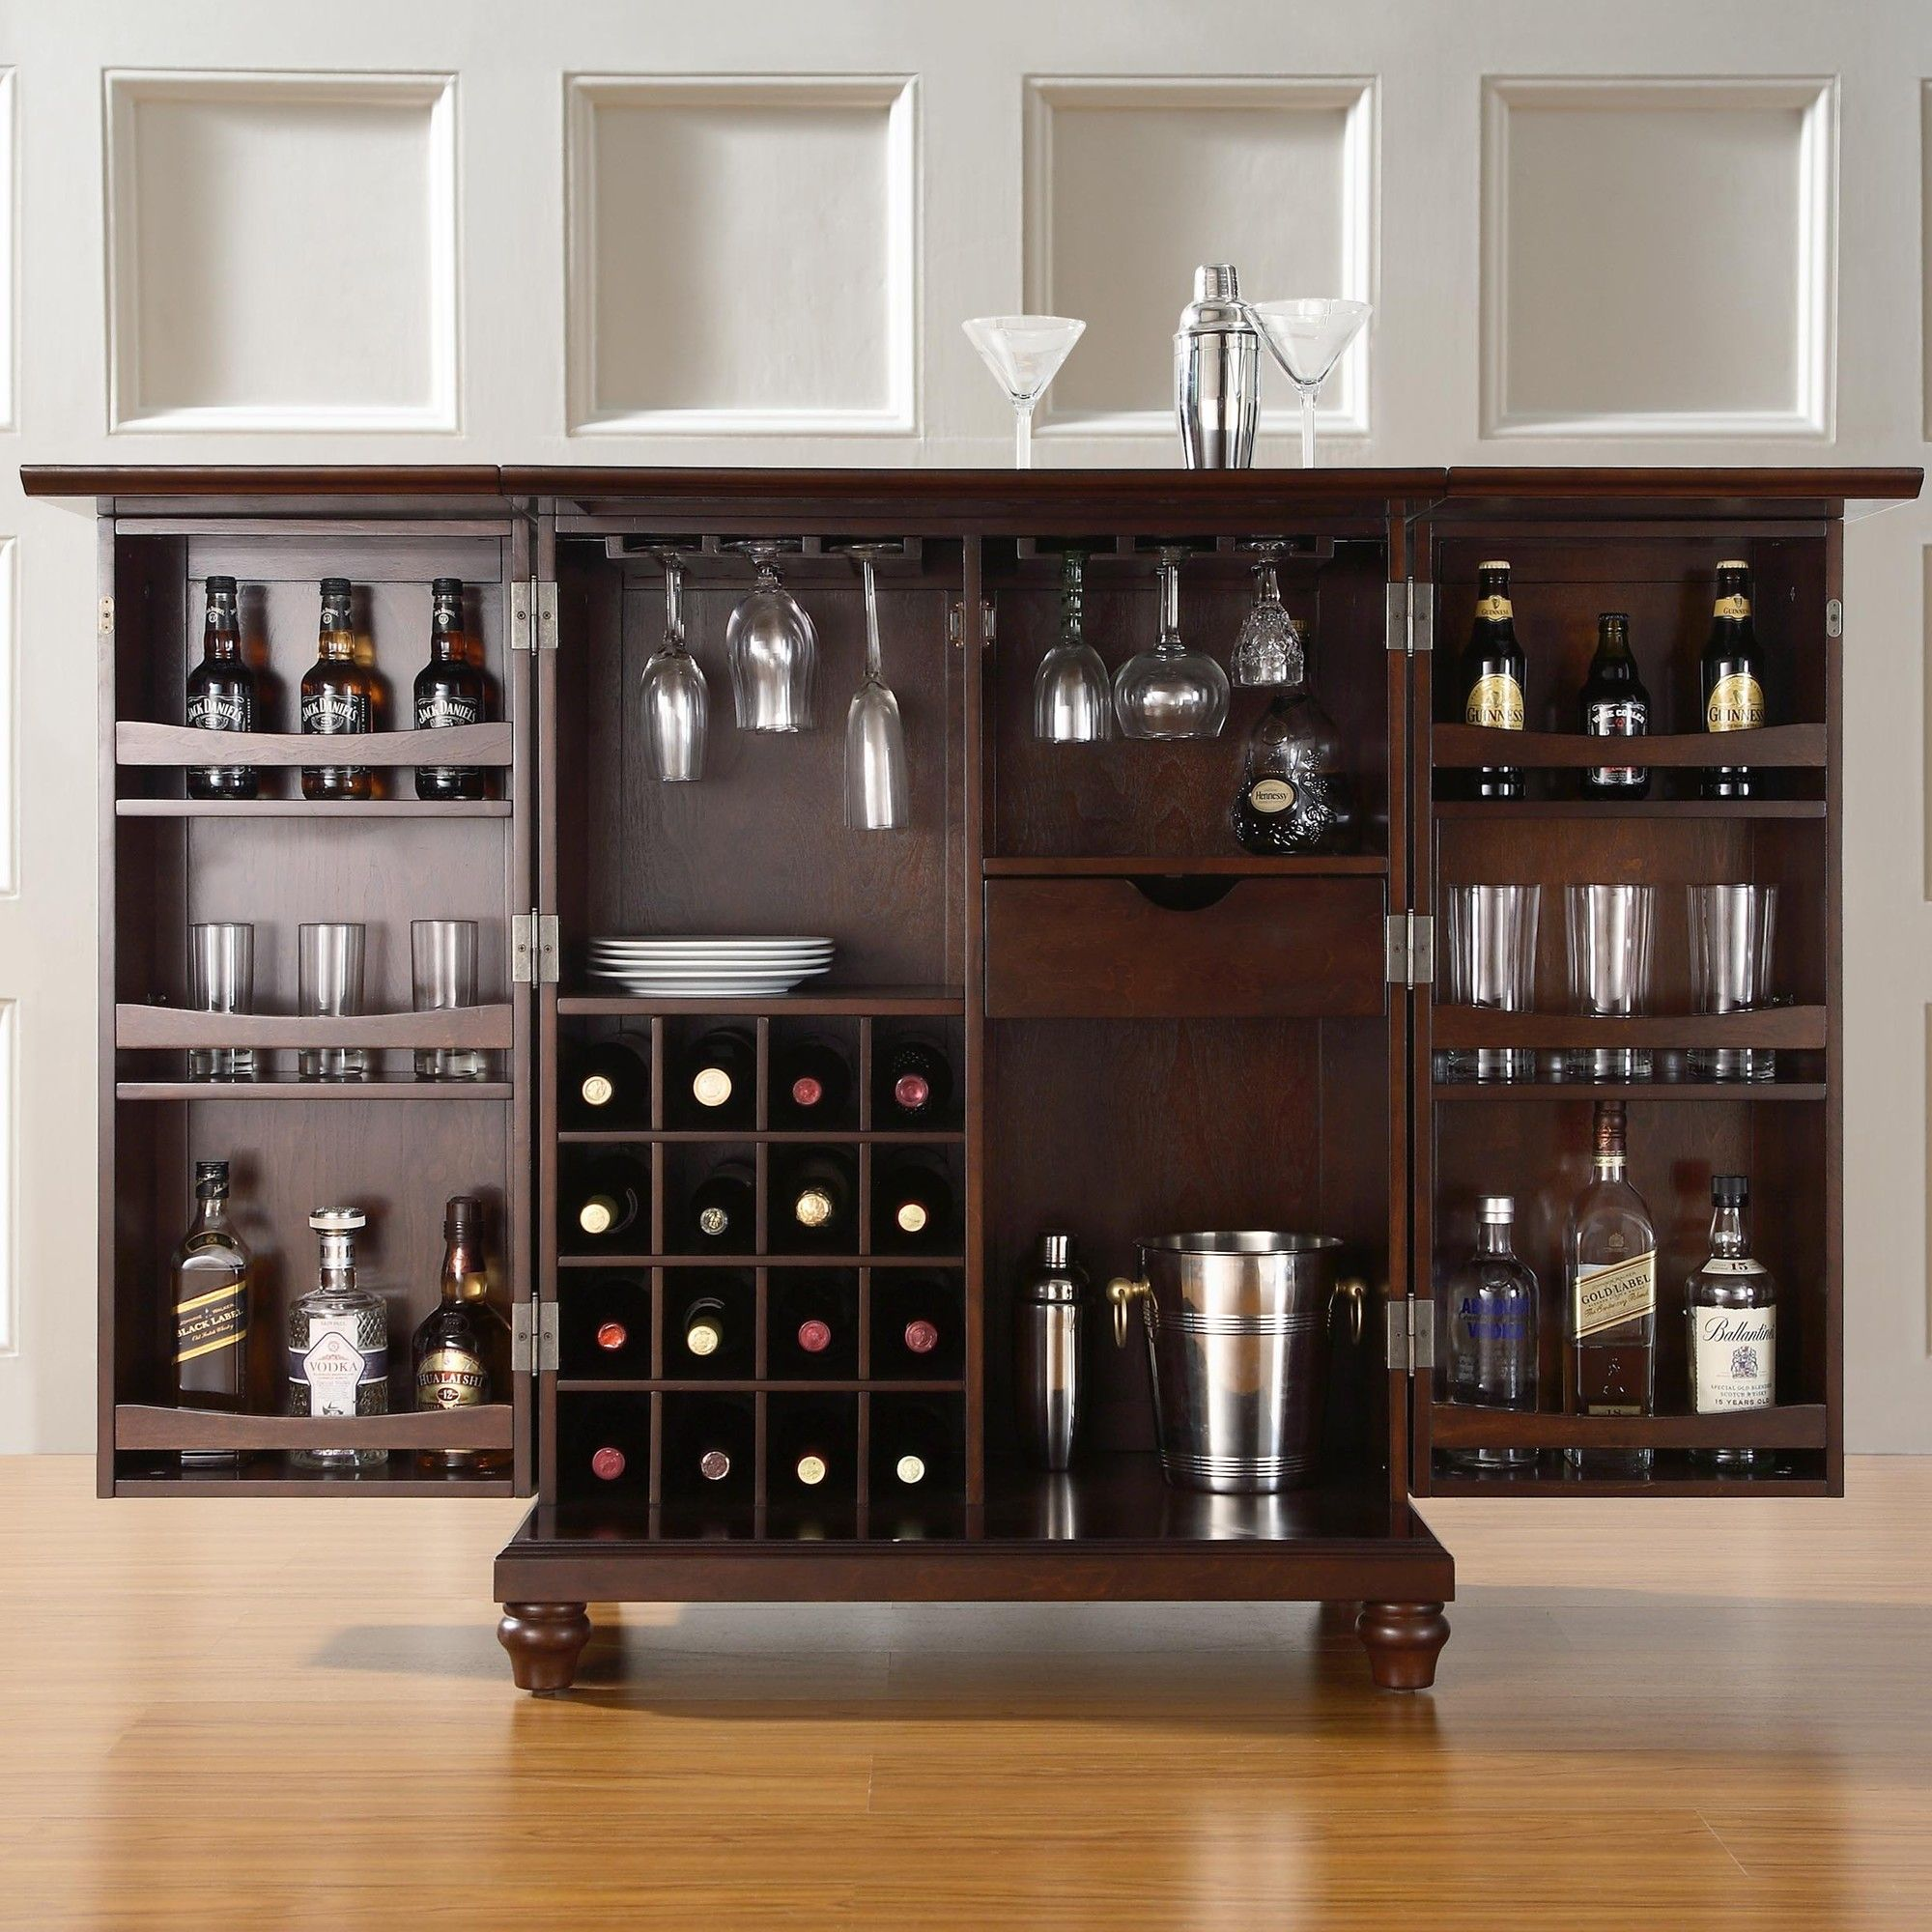 42 Beautiful Small Home Mini Bar Cabinets Sets Amp Wine Bars Art Pictures Home Bar Cabinet